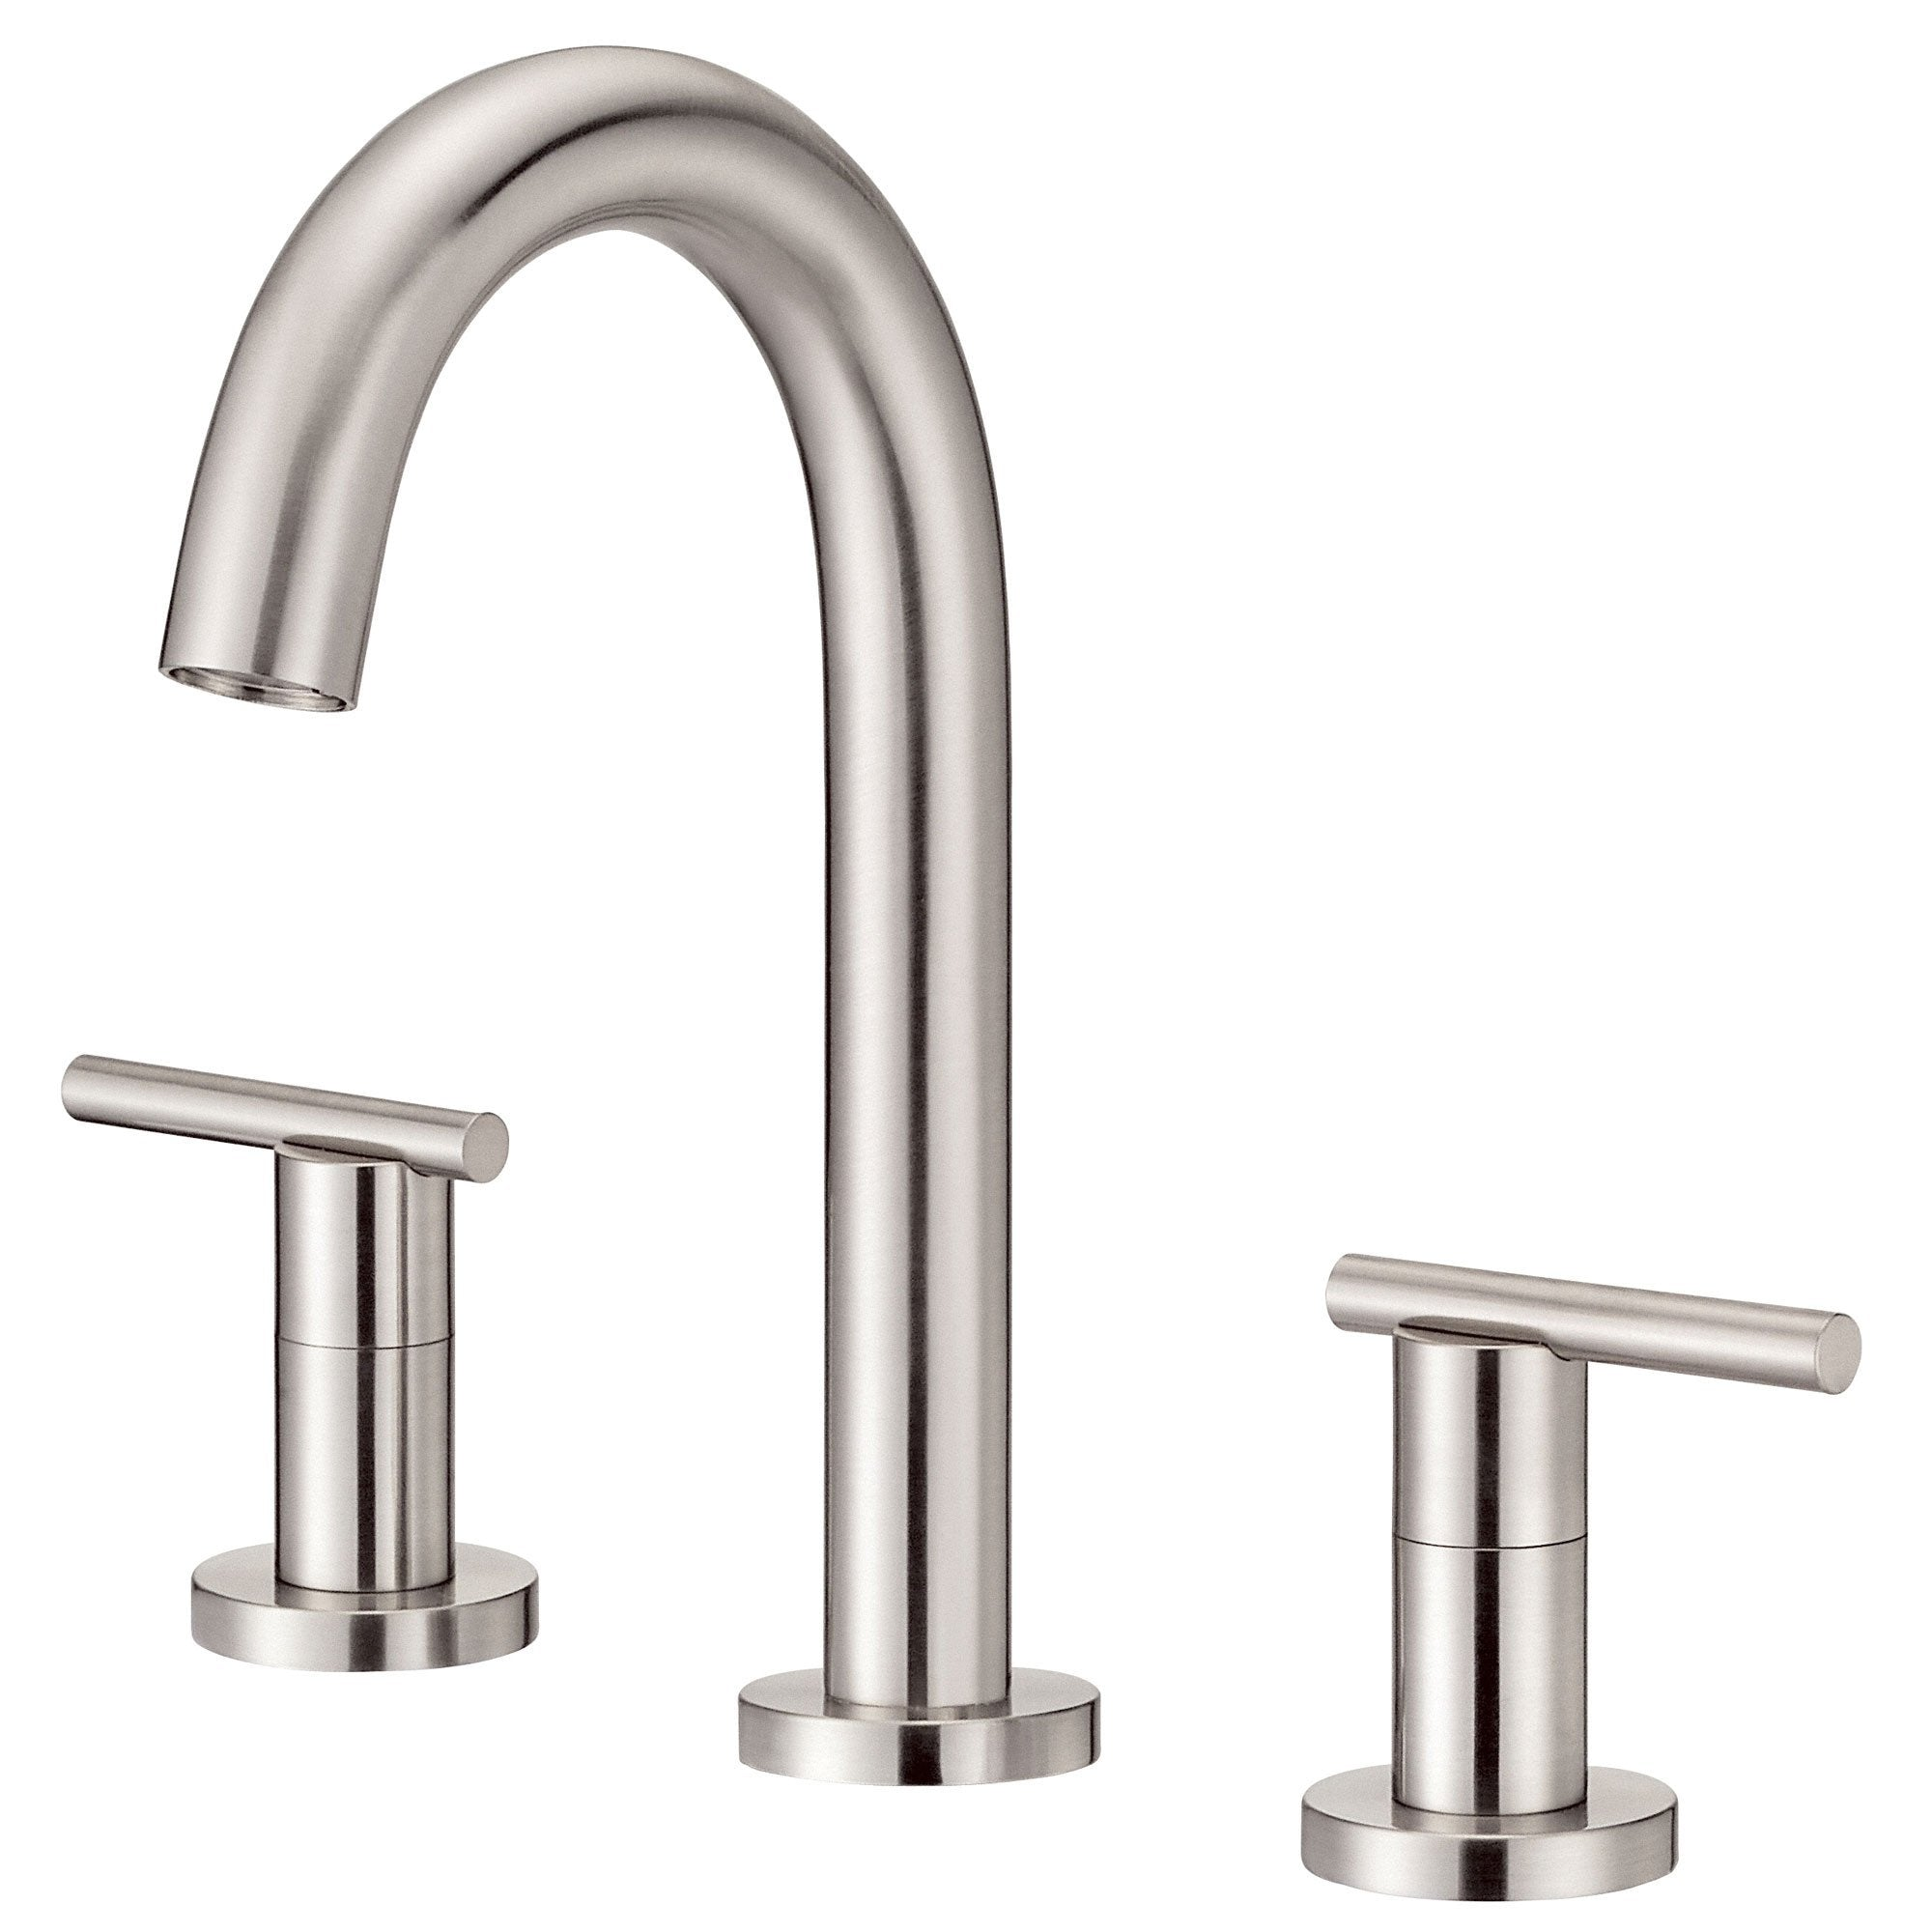 Danze Parma Brushed Nickel Cylindrical Trimline Slim Widespread Bathroom Faucet